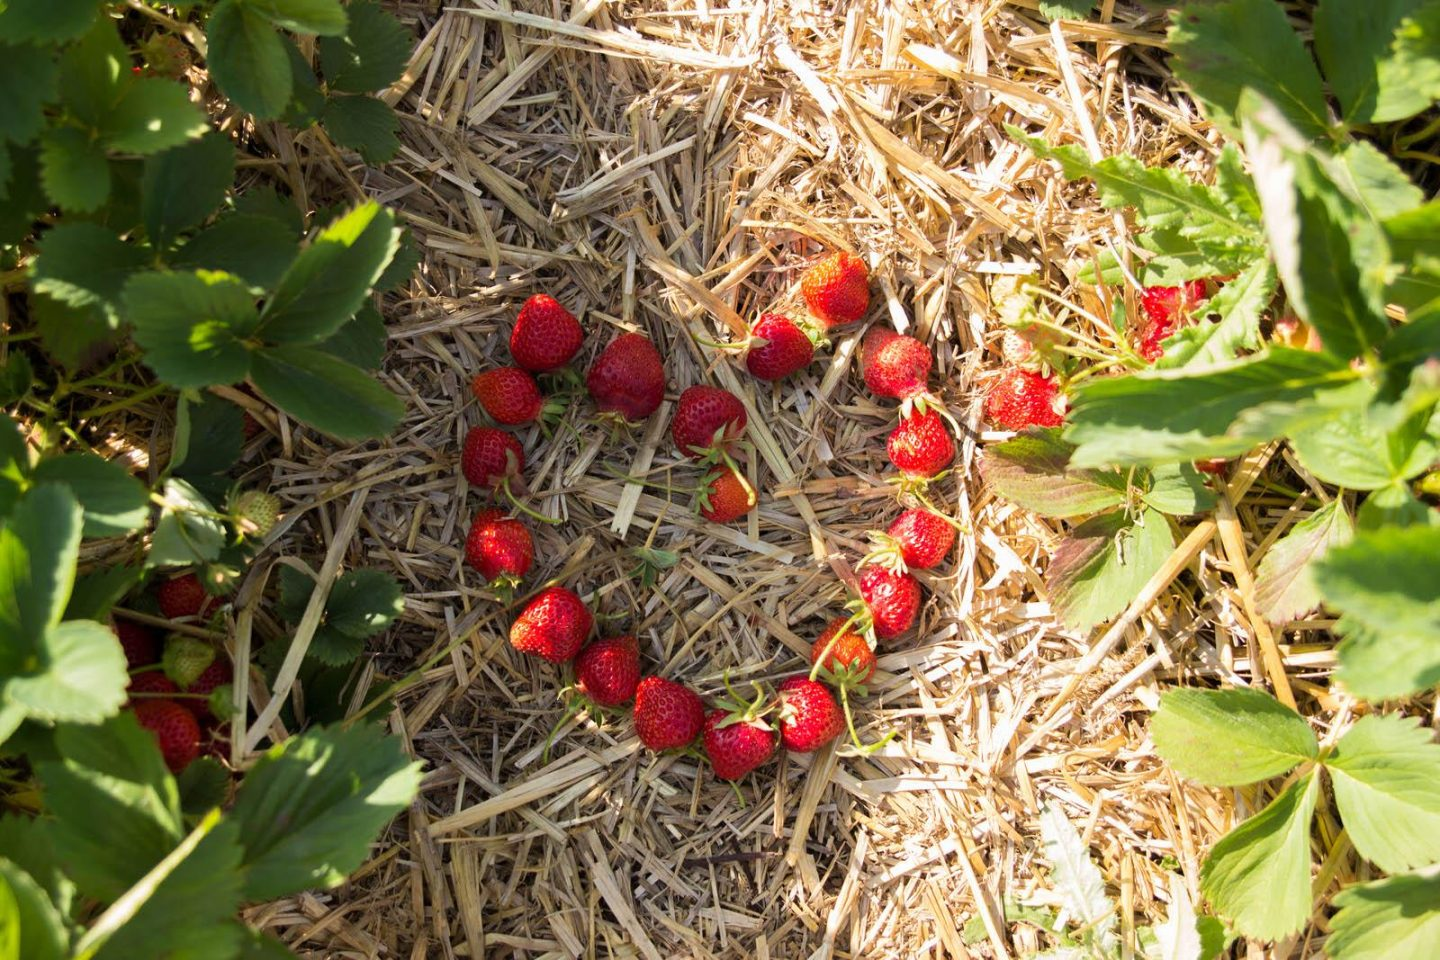 Strawberry Picking06252016_3131-2